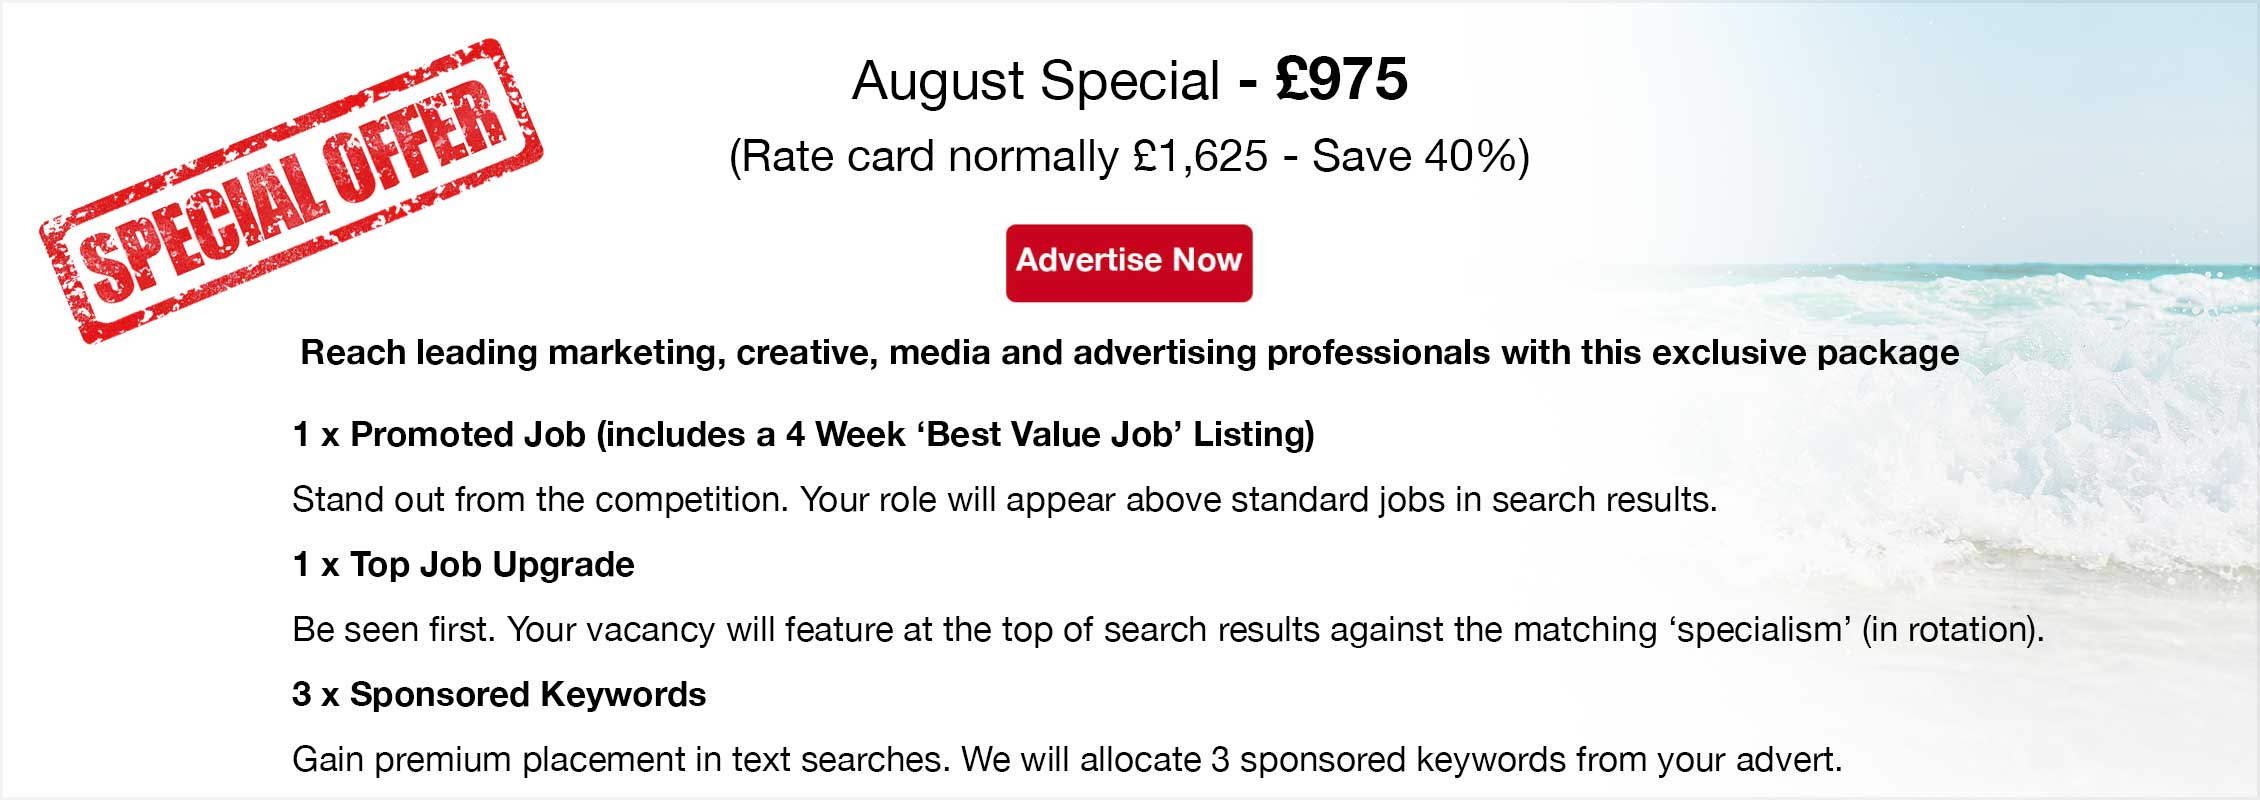 Special Offer. August Special - £975 (Rate card normally £1,625 - Save 40%). Advertise Now. Reach leading marketing, creative, media and advertising professionals with this exclusive package. 1 x Promoted Job (includes a 4 Week 'Best Value Job' Listing). Stand out from the competition. Your role will appear above standard jobs in corresponding search results.  1 x Top Job Upgrade. Be seen first. Your vacancy will feature at the top of search results against the matching 'specialism' (in rotation).  3 x Sponsored Keywords. Gain premium placement in text searches. We will allocate 3 sponsored keywords from your advert.